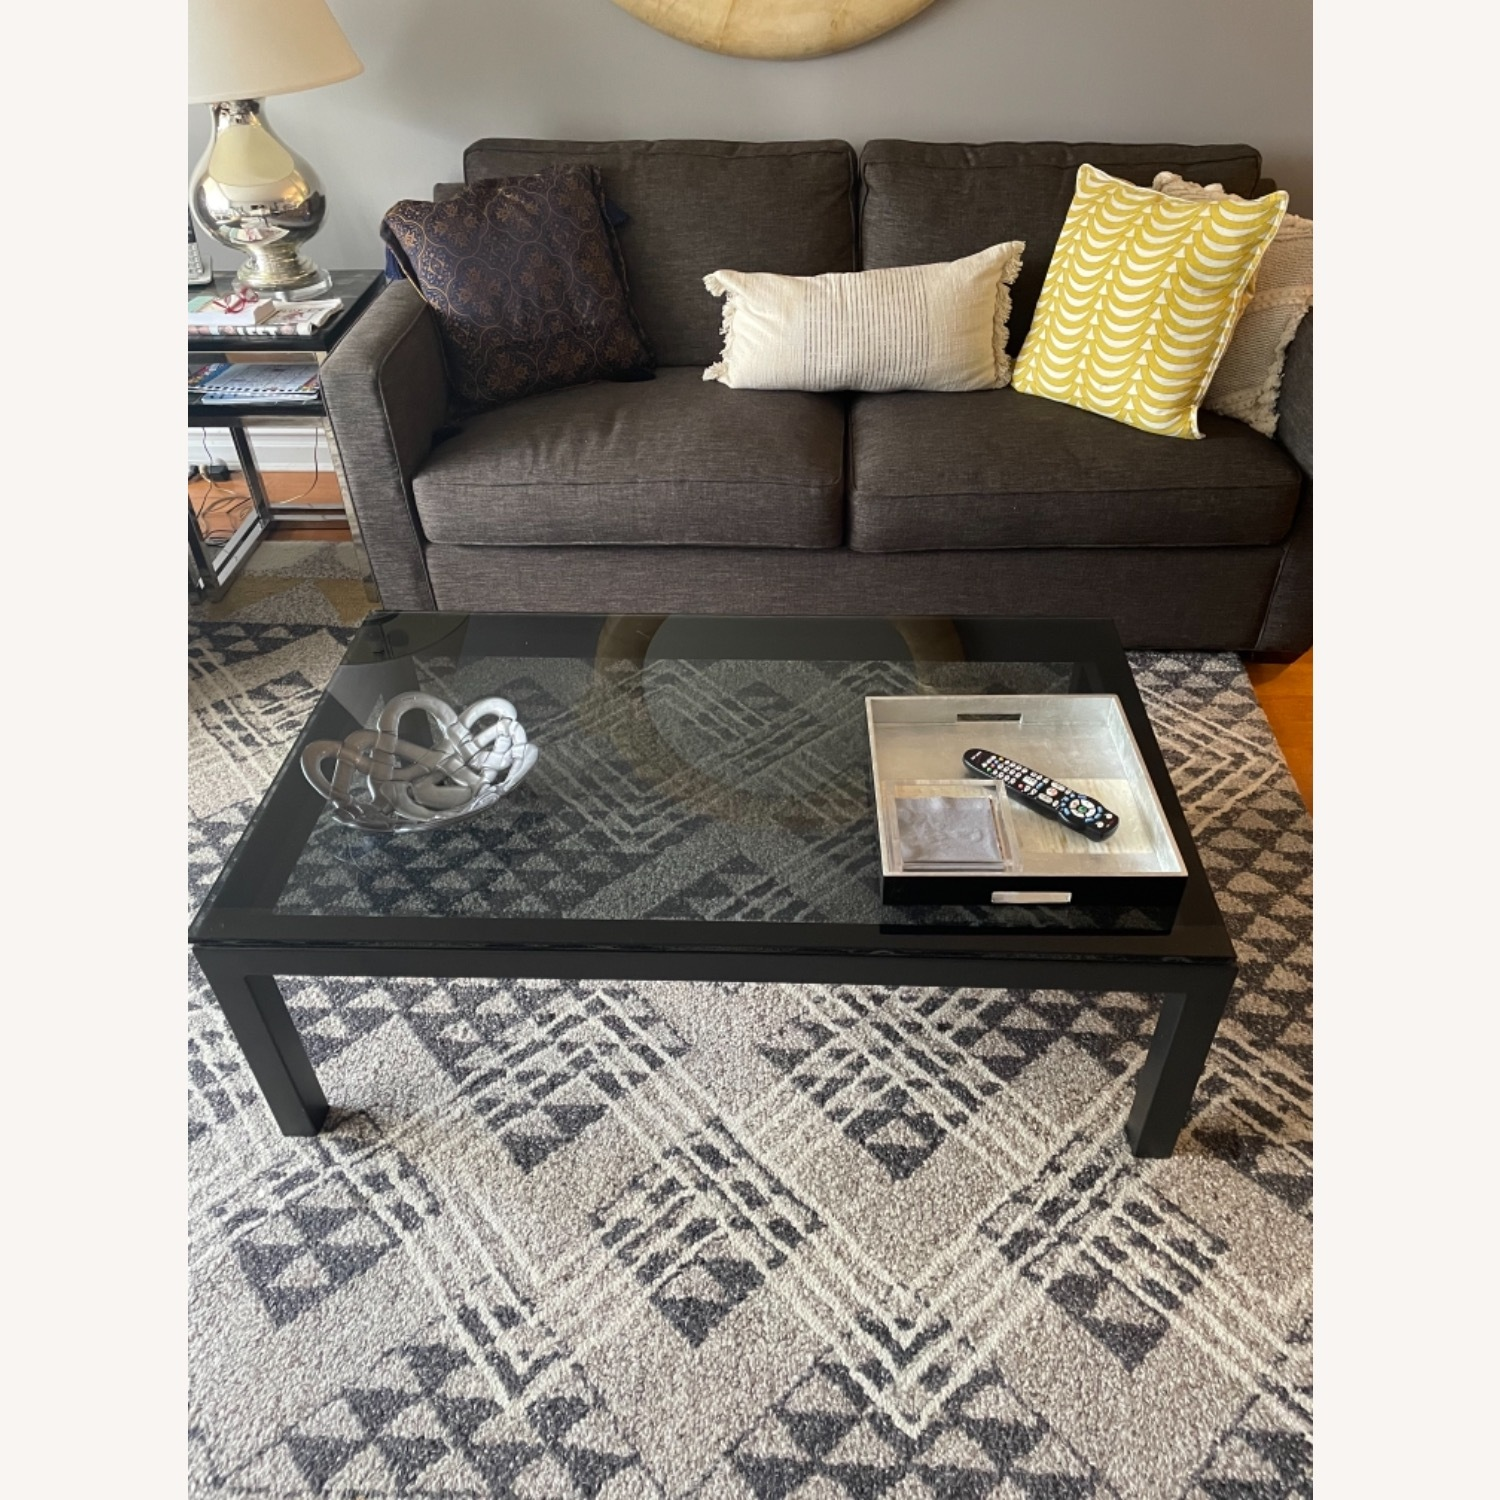 Crate and Barrel Smoked Glass Black Coffee Table - image-1